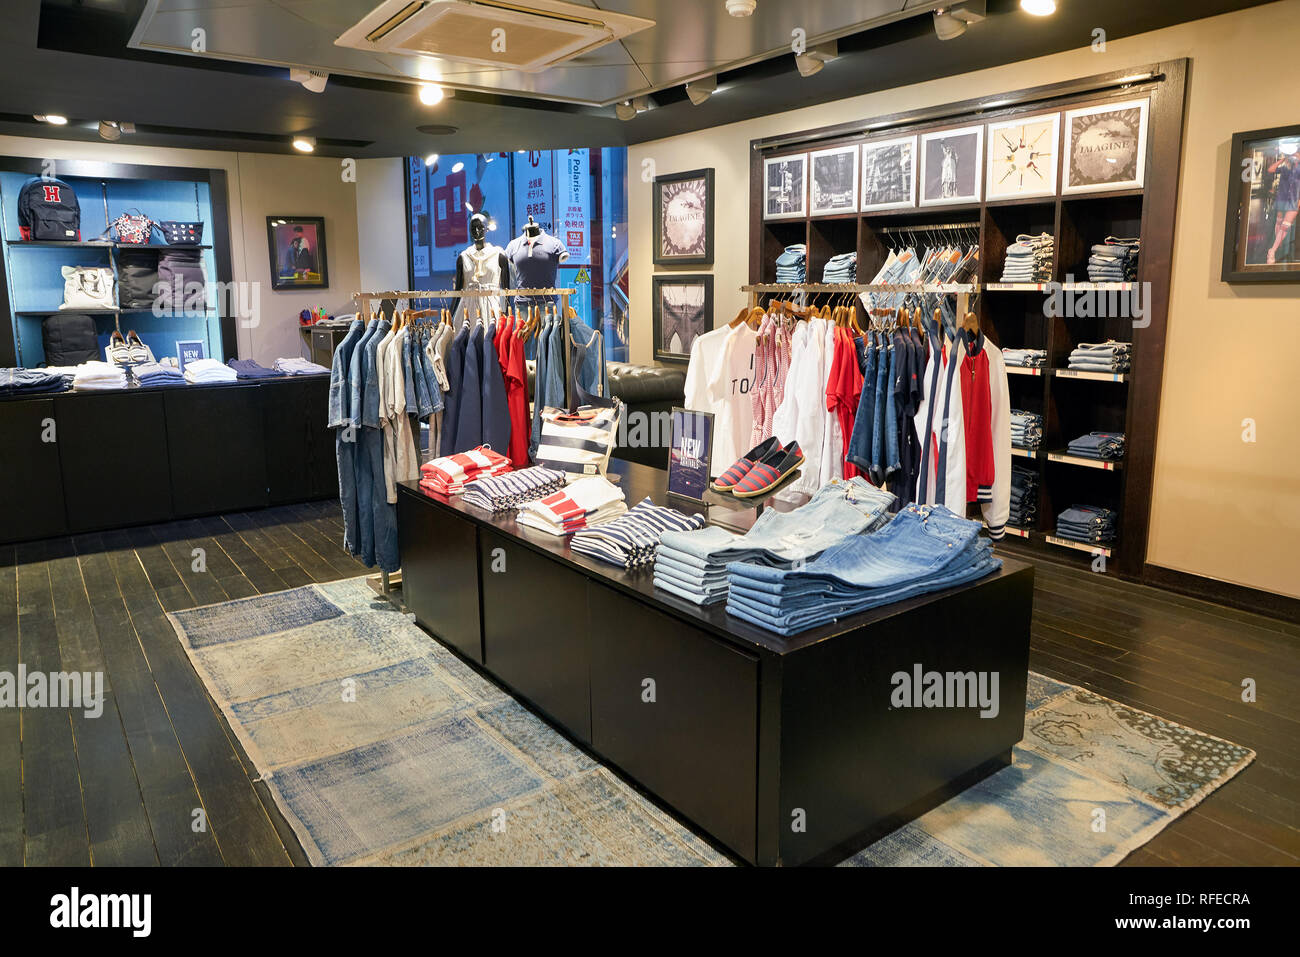 3f57a4a35889cf Tommy Hilfiger Store Display Stock Photos   Tommy Hilfiger Store ...